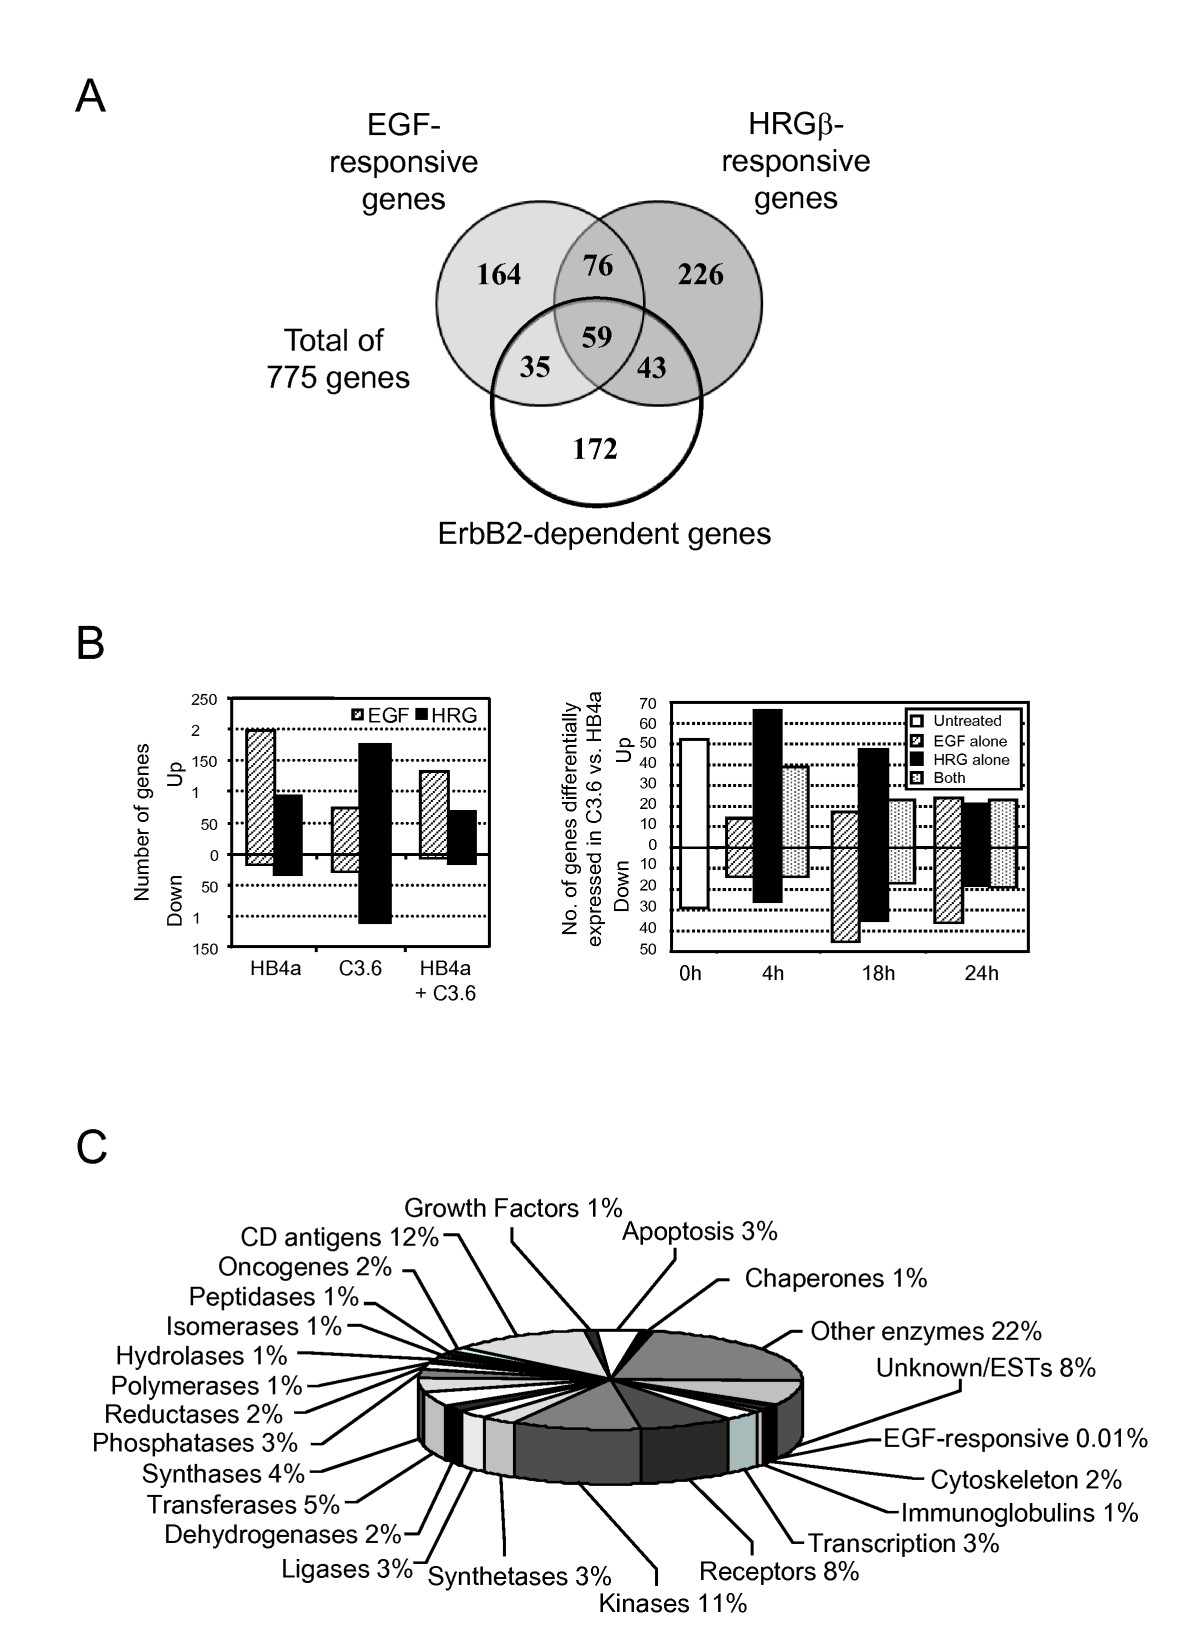 http://static-content.springer.com/image/art%3A10.1186%2F1471-2407-10-490/MediaObjects/12885_2010_Article_2289_Fig1_HTML.jpg